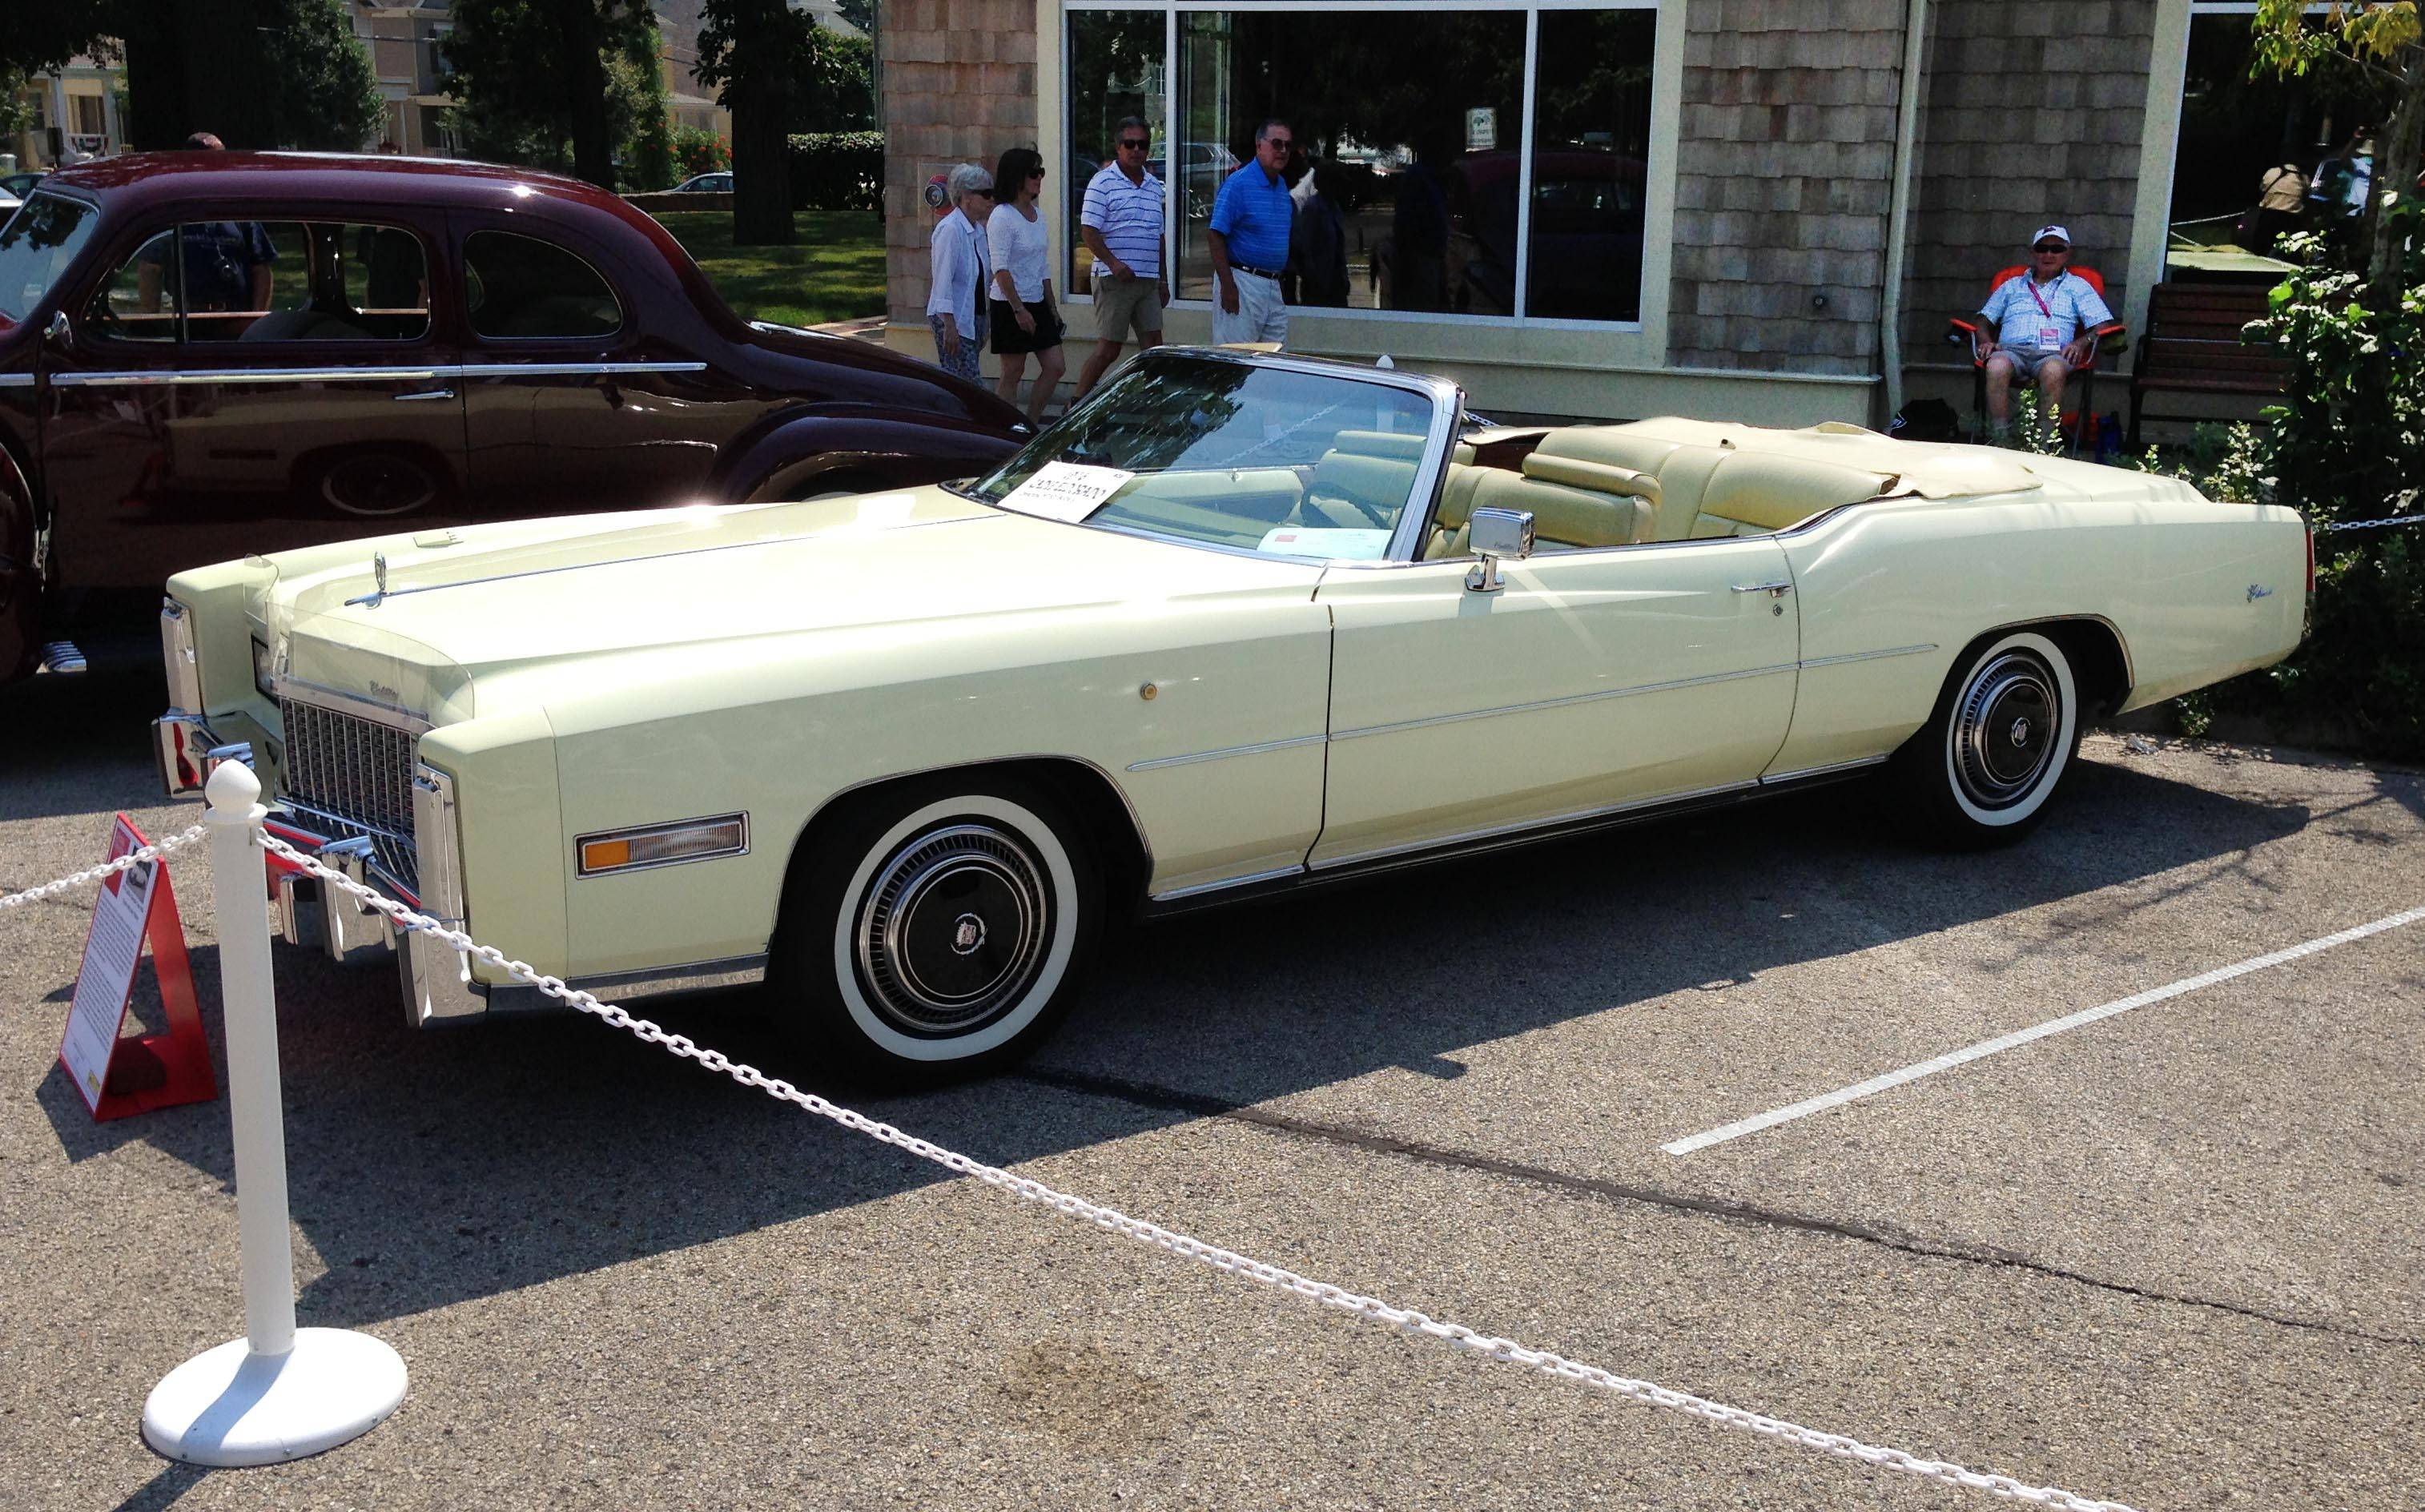 A 1976 Cadillac Eldorado two-door convertible, owned by Charles Hartley, was on display at last year's Geneva Concours d'Elegance show.